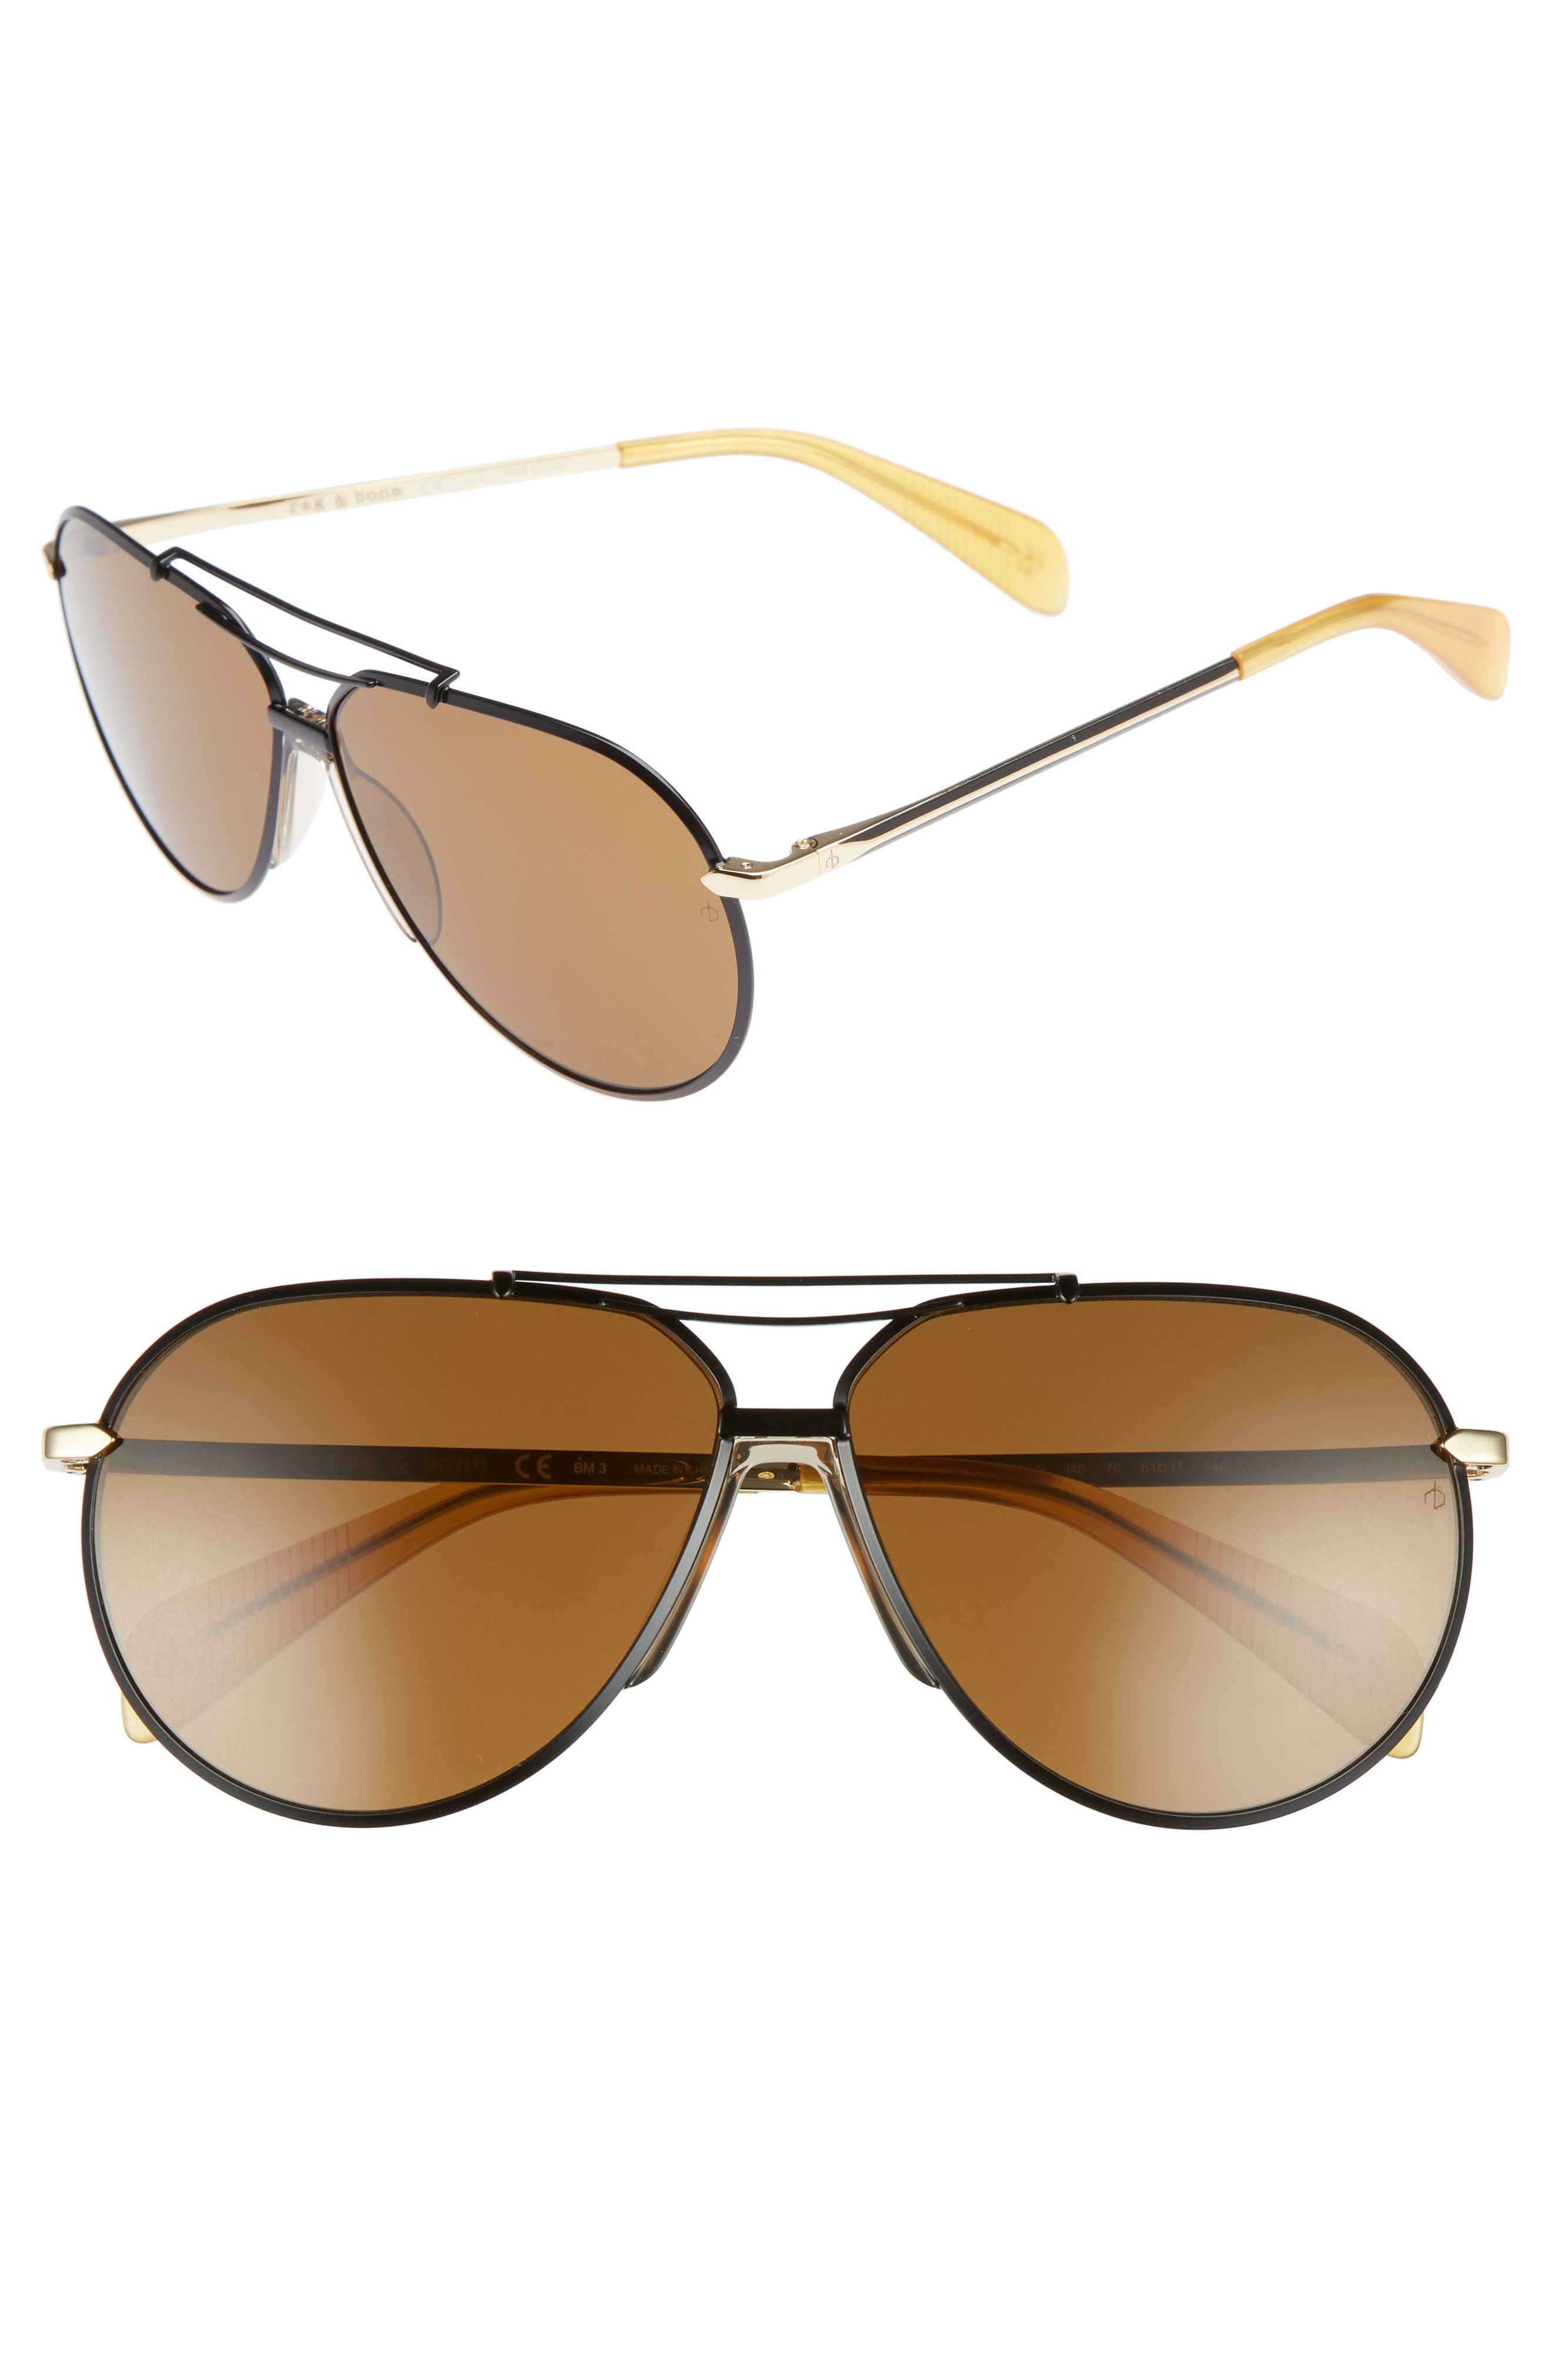 61mm Aviator Sunglasses,                             Main thumbnail 1, color,                             BLACK GOLD